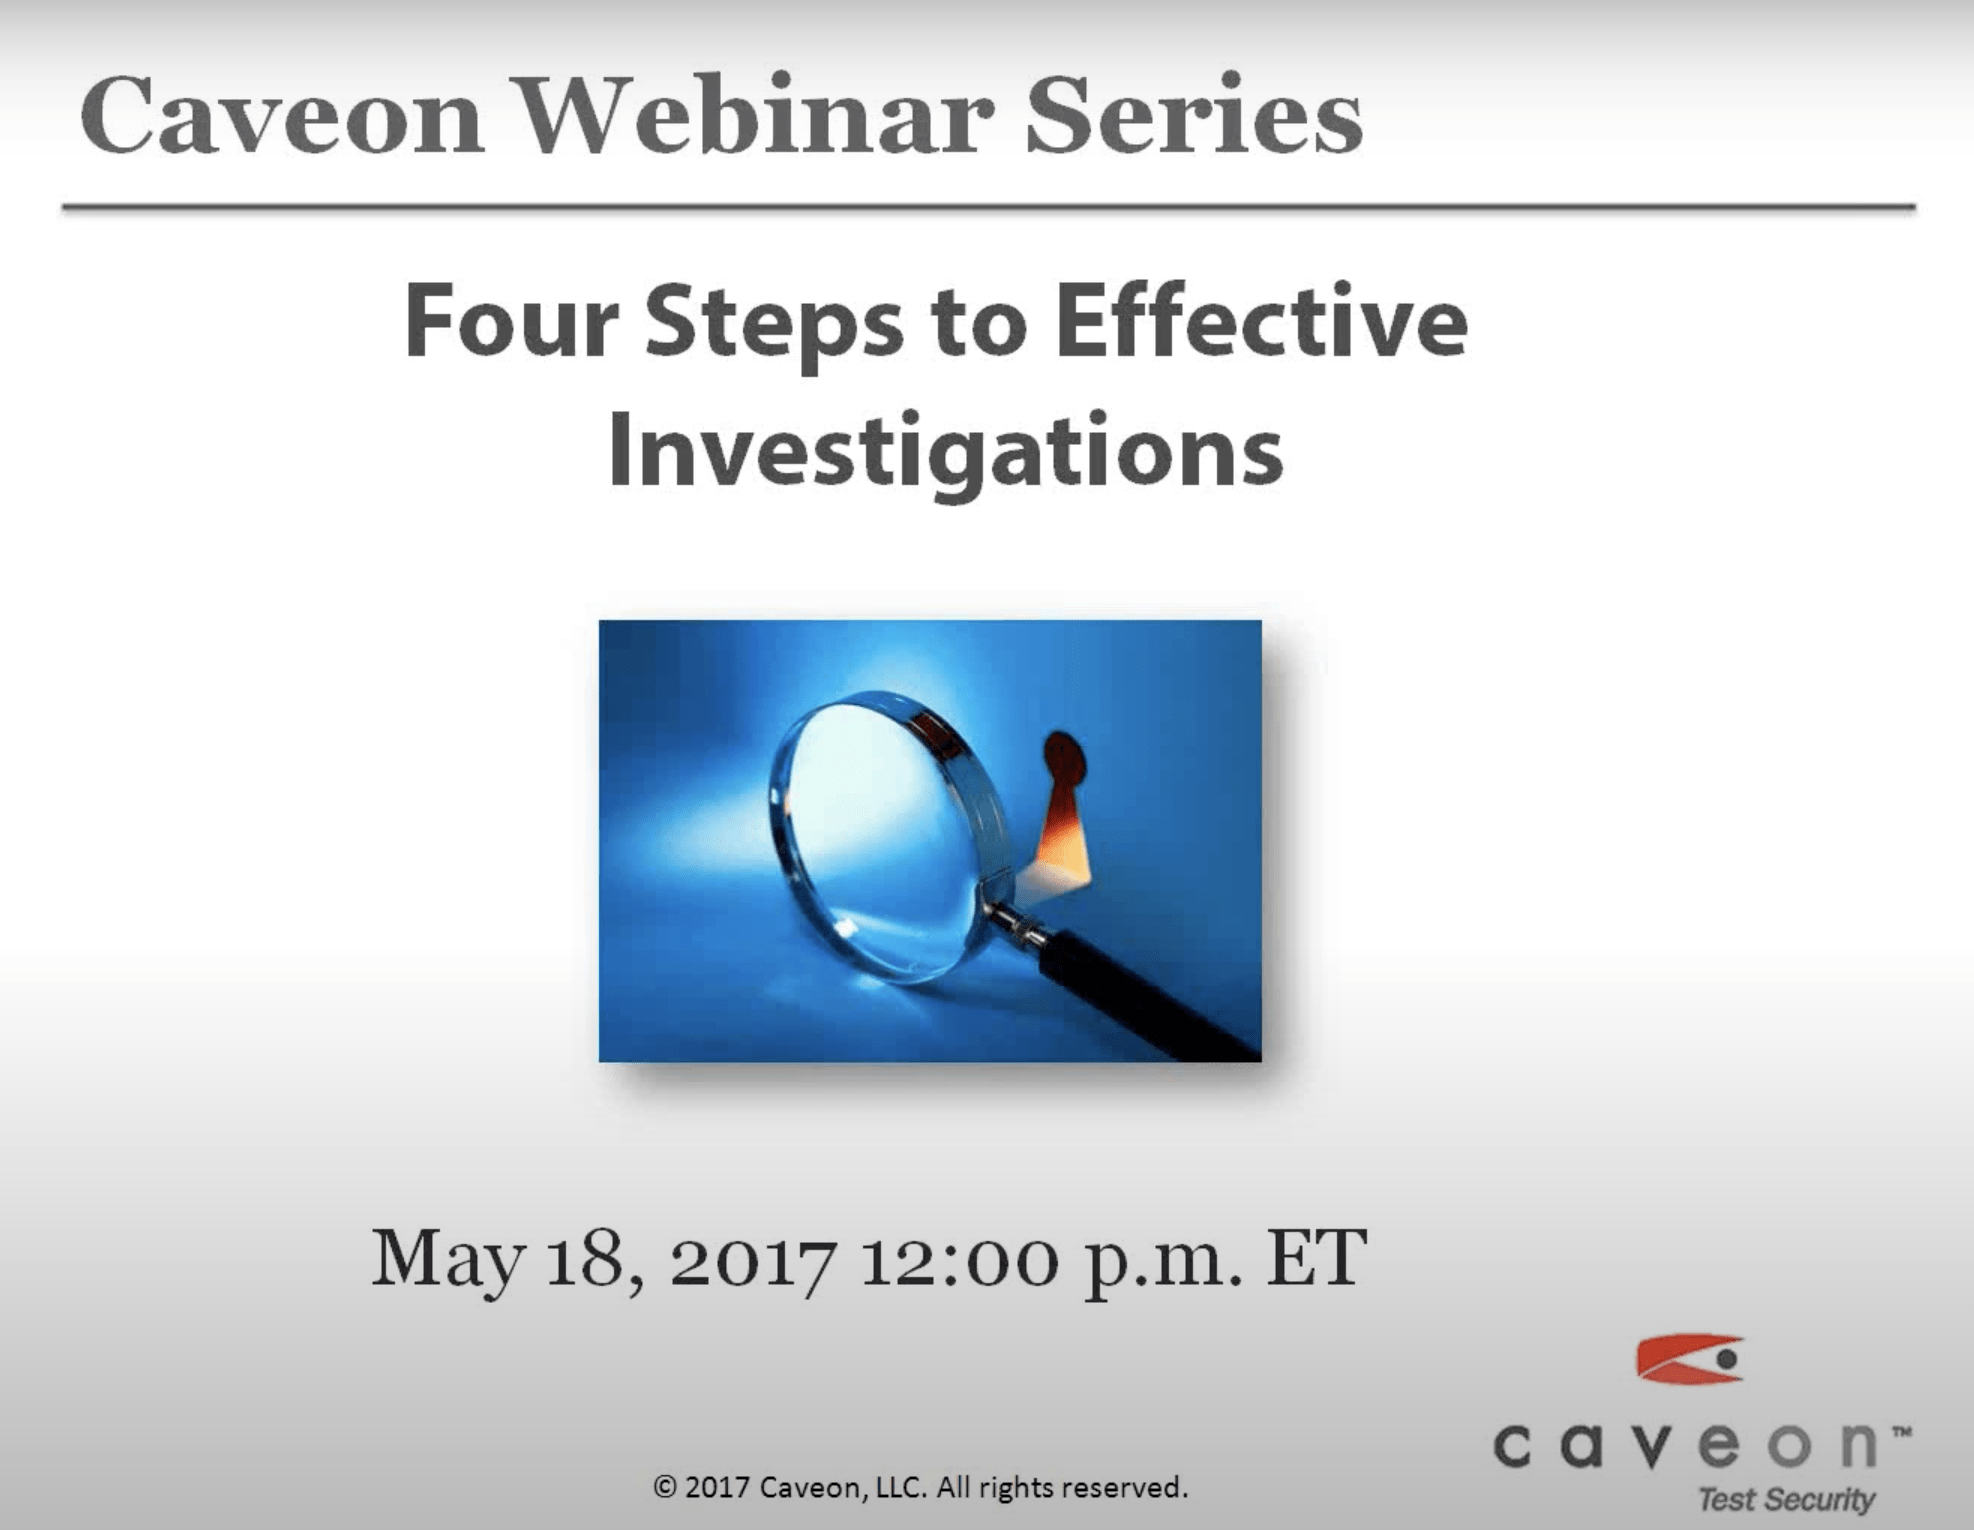 Four Steps to Effective Investigations